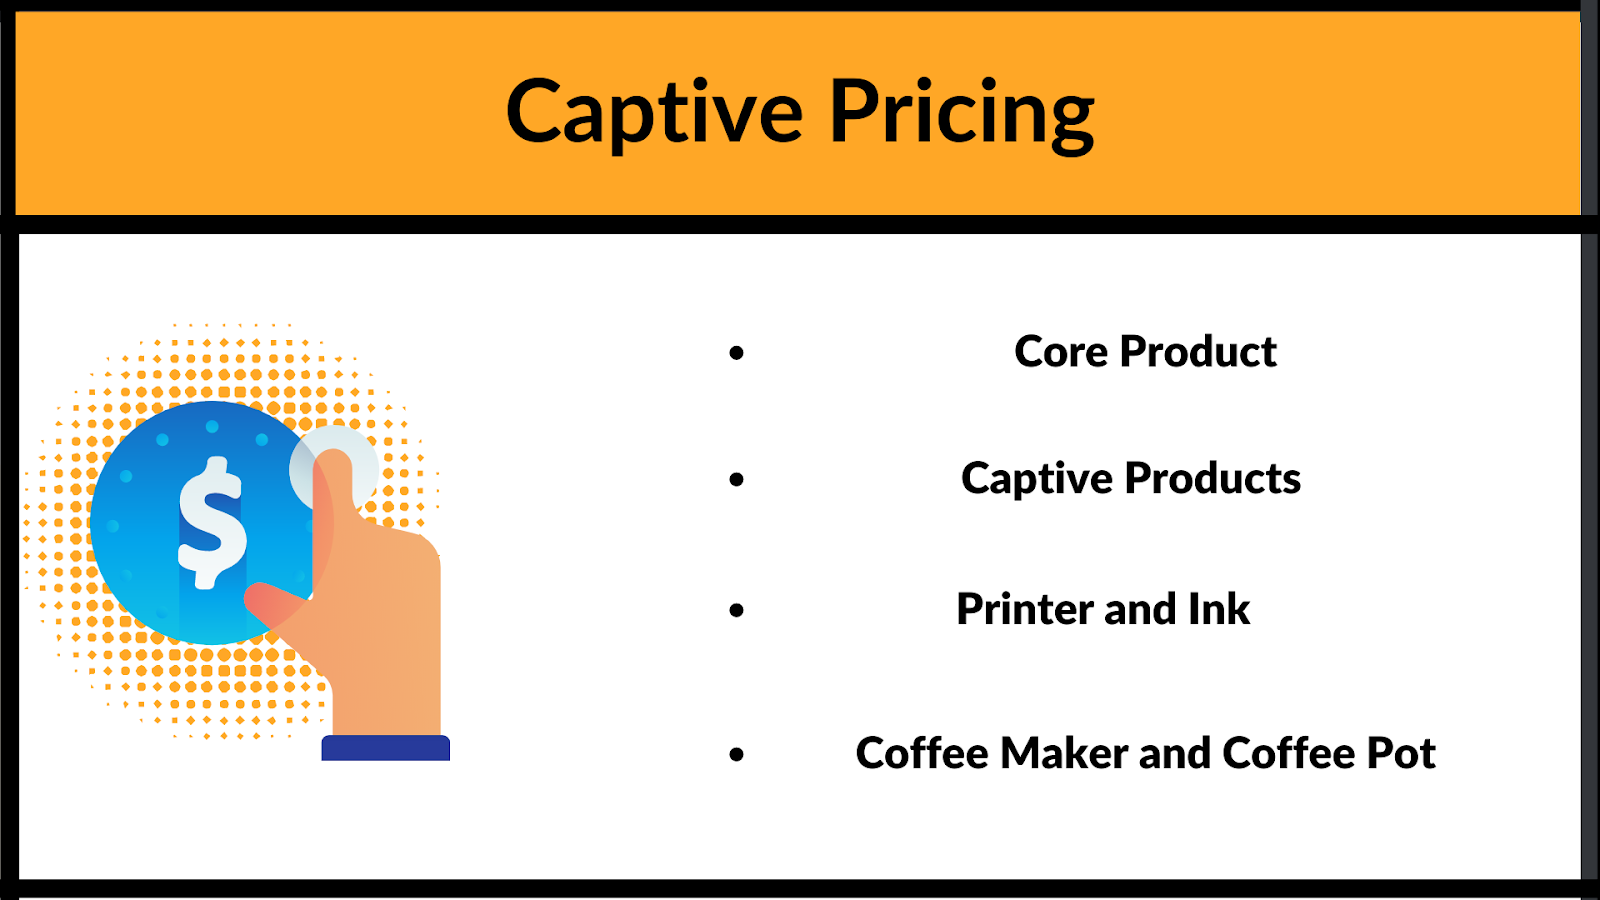 What is Captive pricing and what does it include